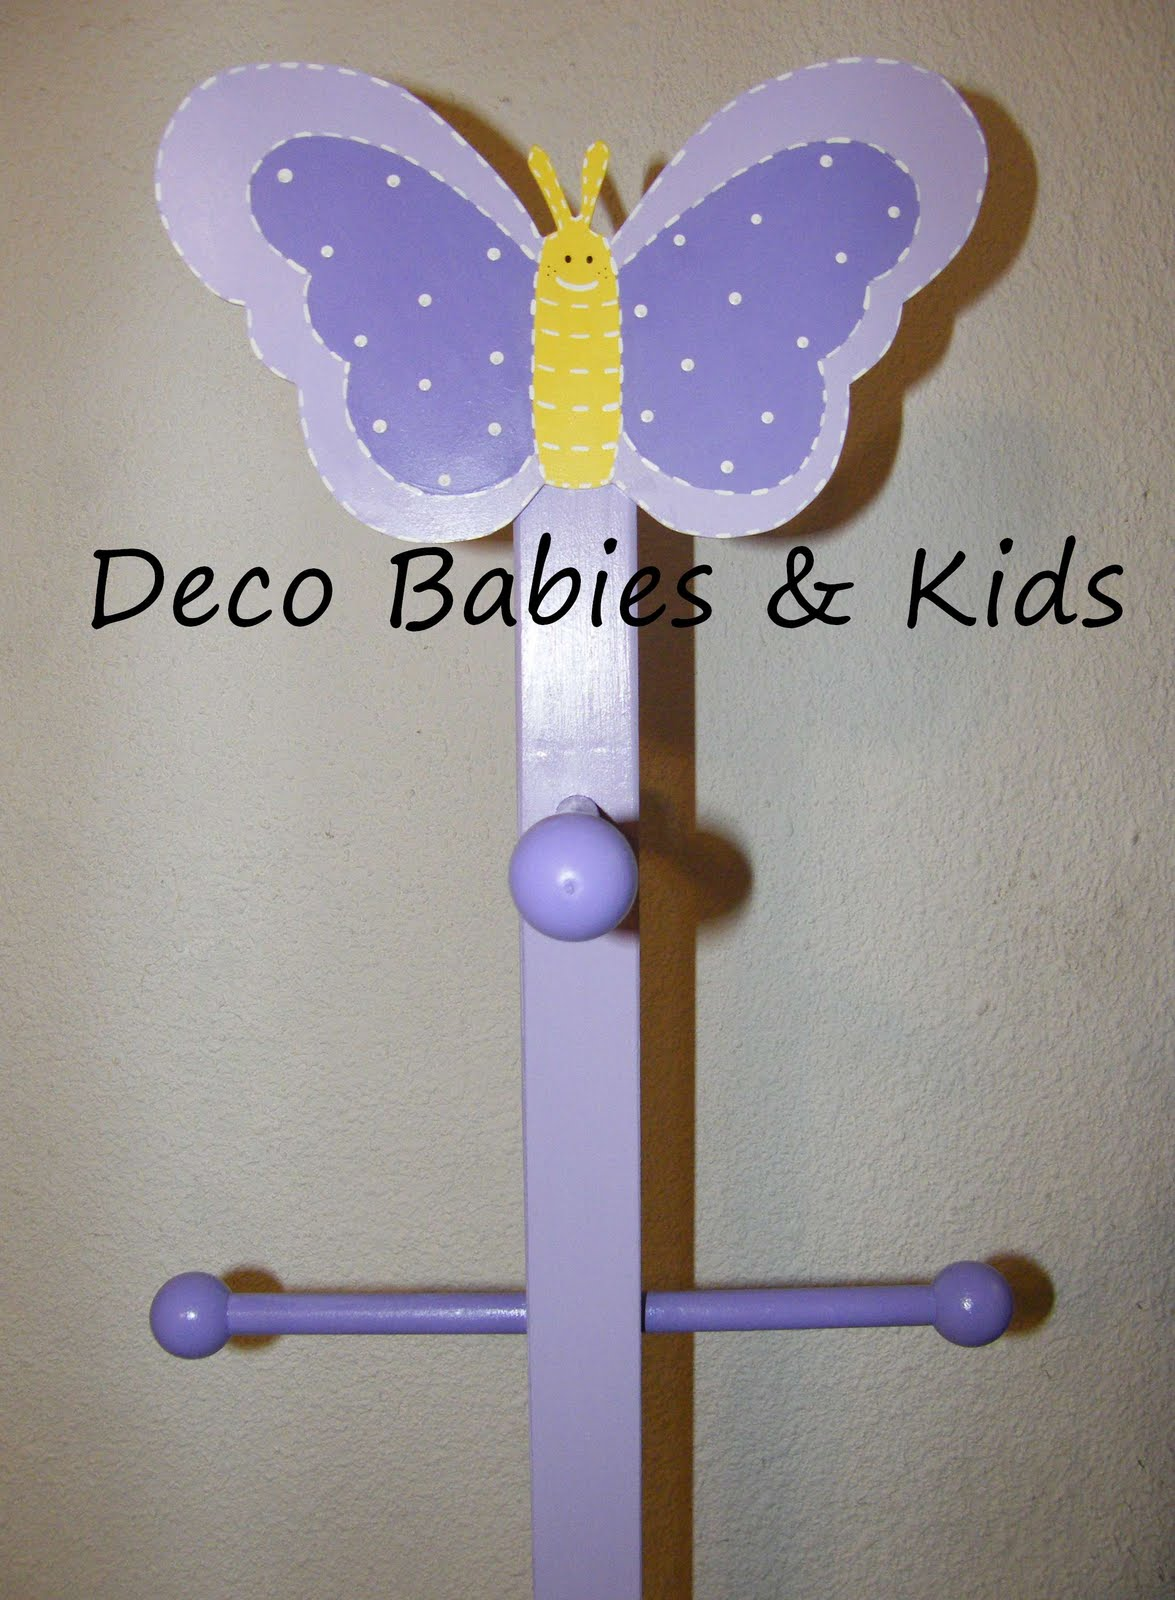 Deco babies kids perchero de pie mariposa for Percheros para colgar en puertas